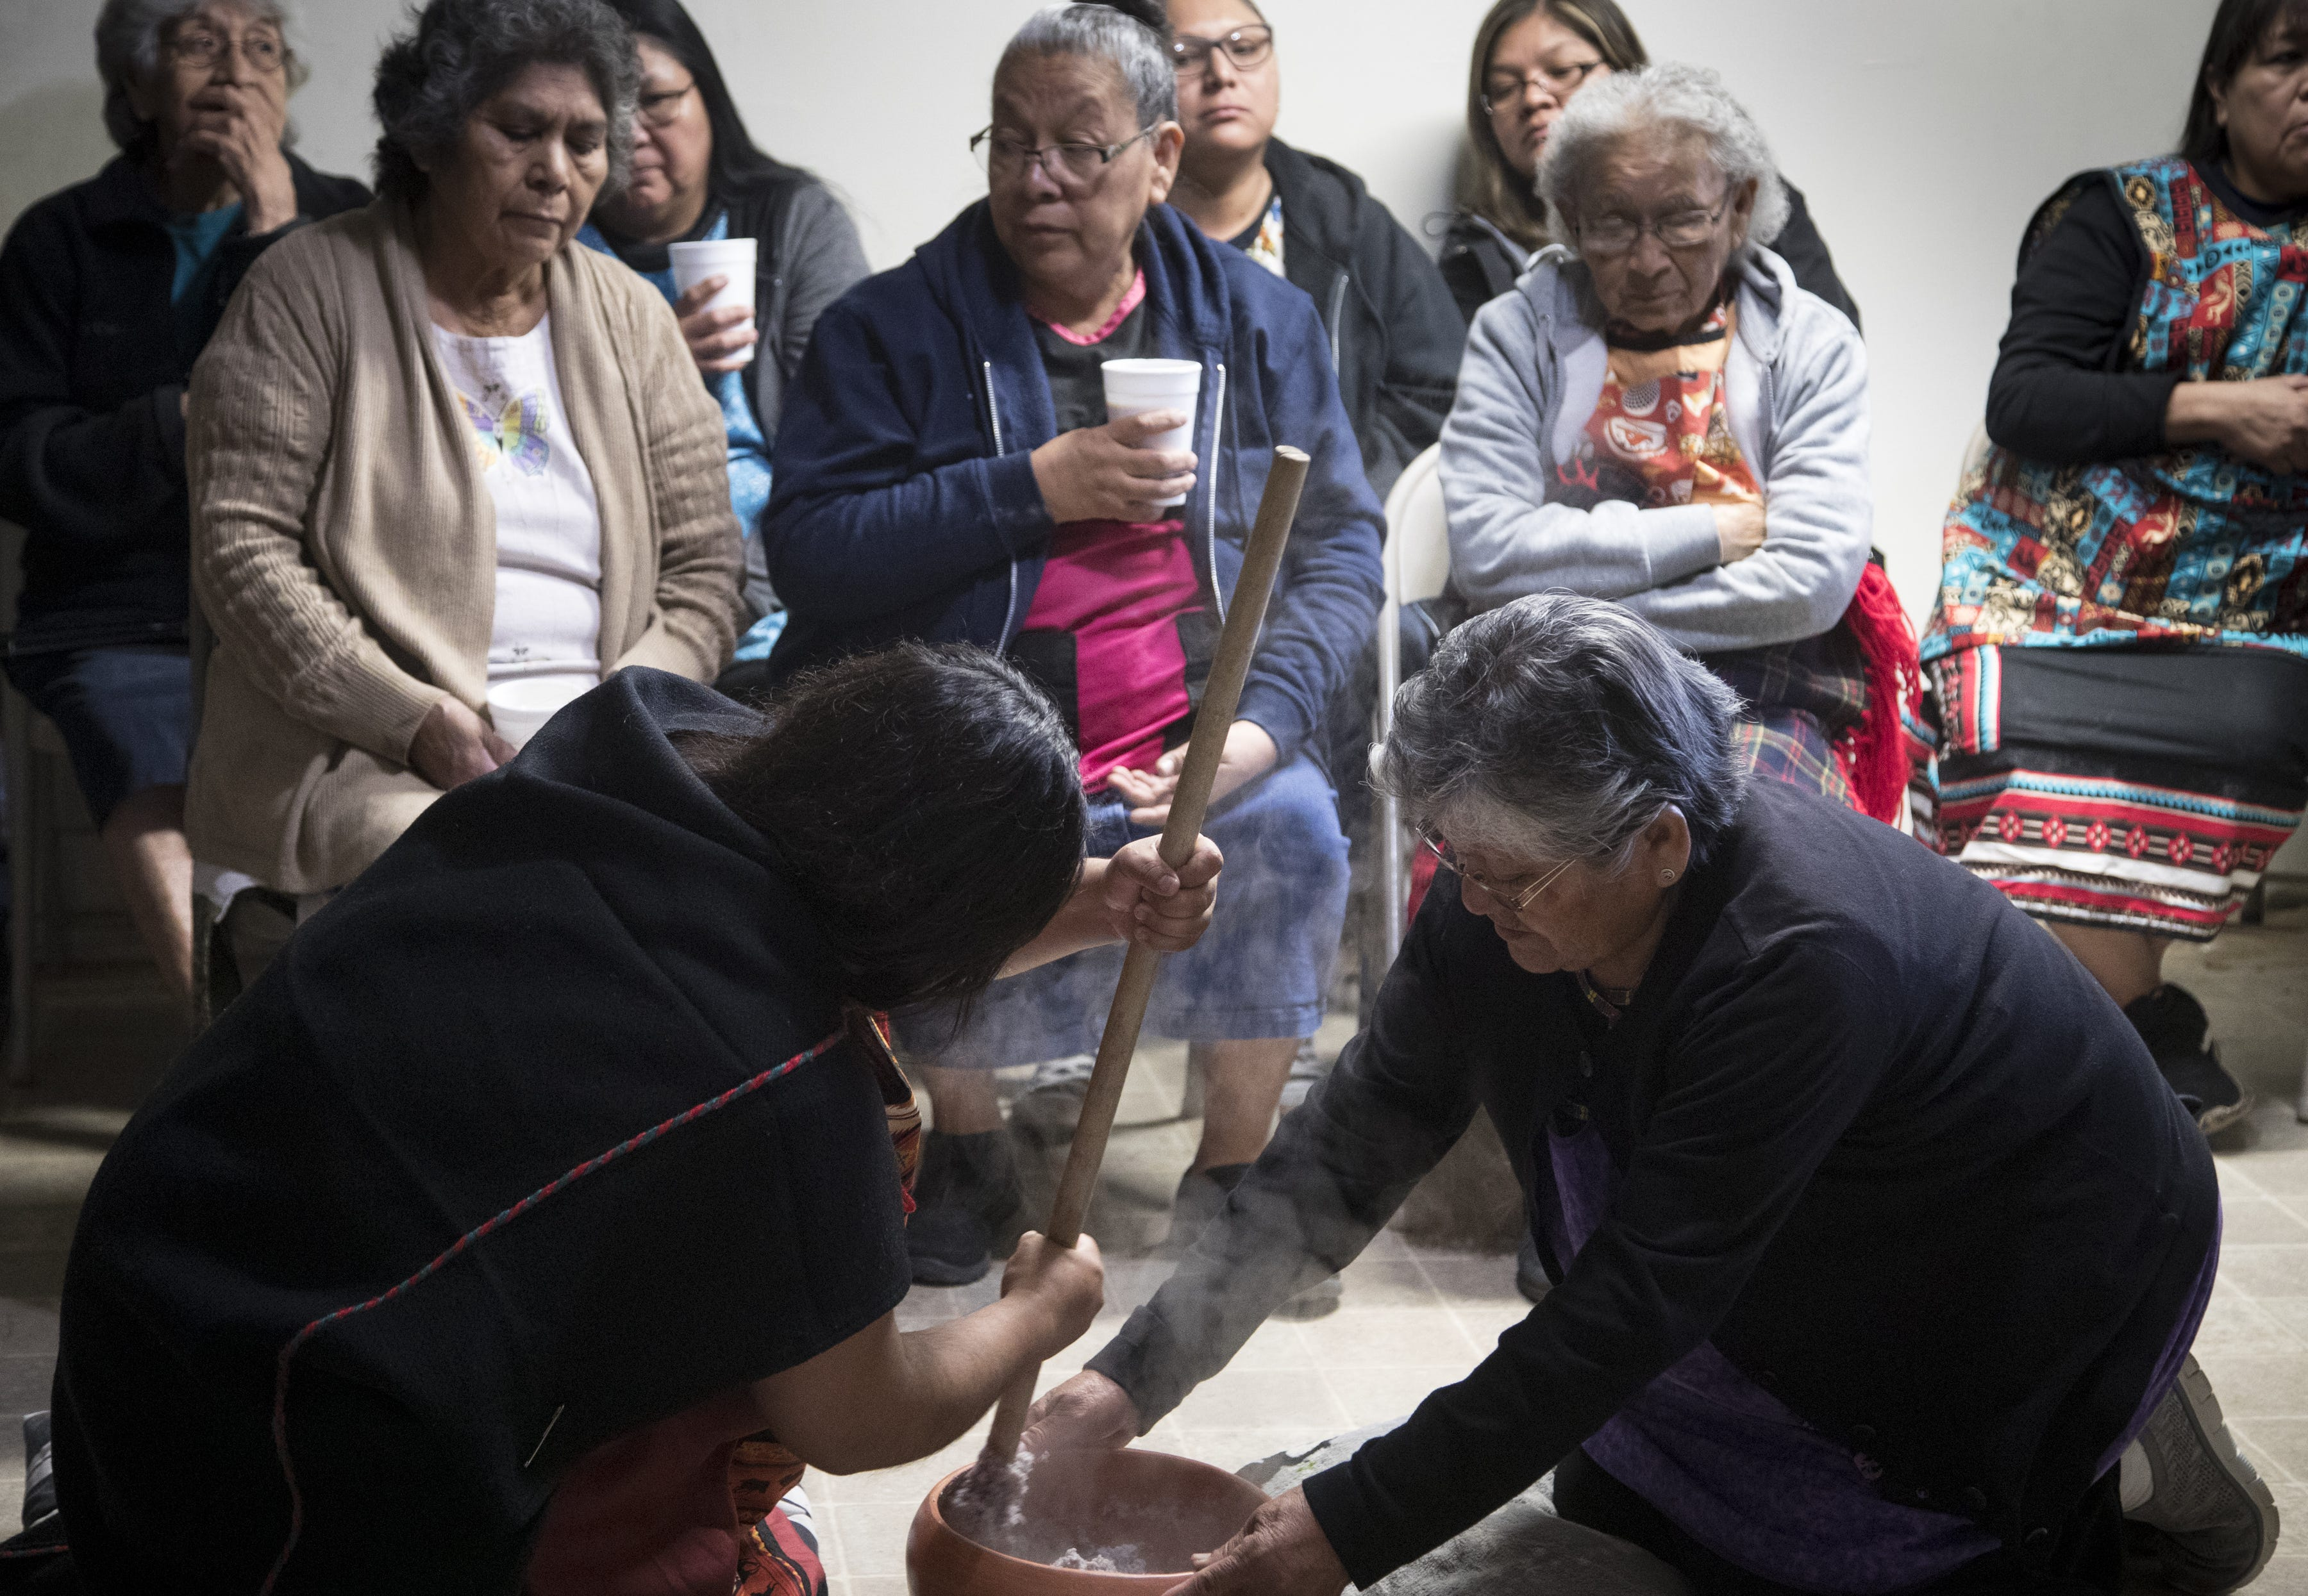 Kara (left) and Eva Iomawaima make the mixture needed for piki bread. Piki bread is a paper-thin blue corn bread cooked over a fire using a stone cook top.